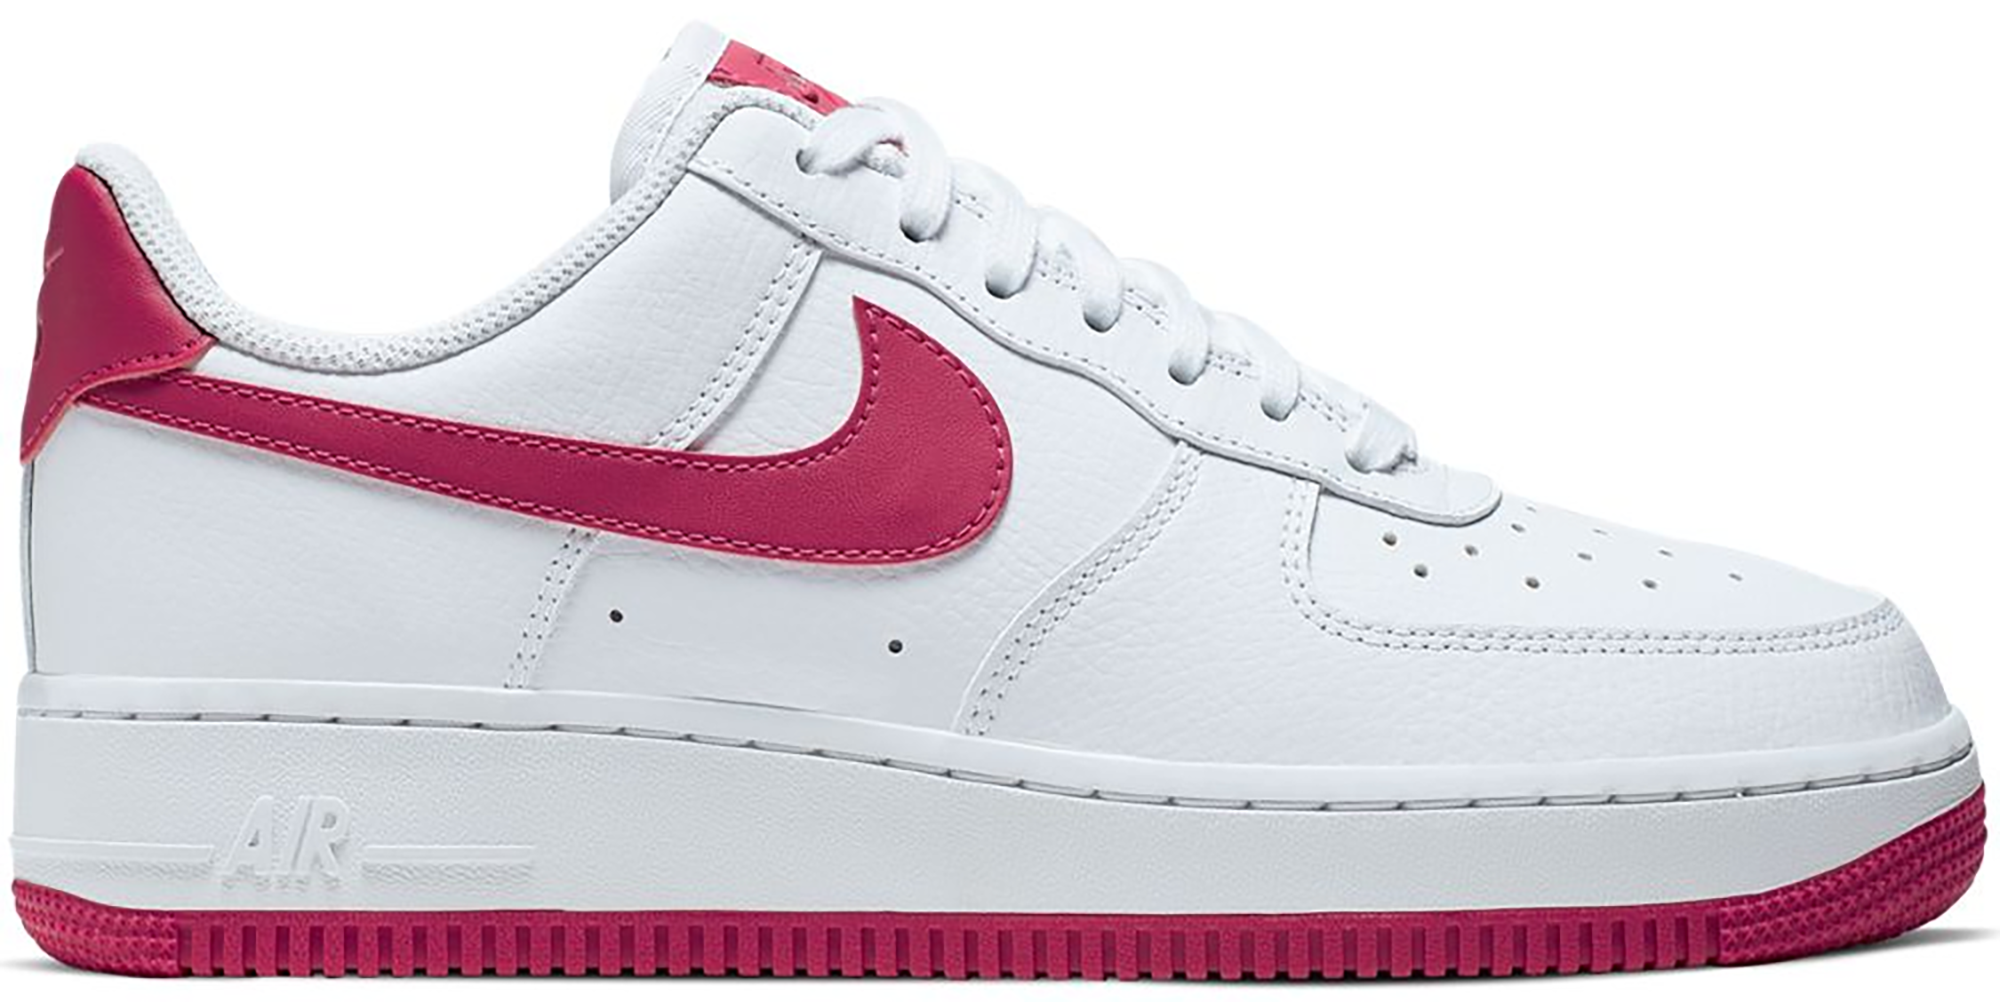 Nike Air Force 1 Low White Wild Cherry